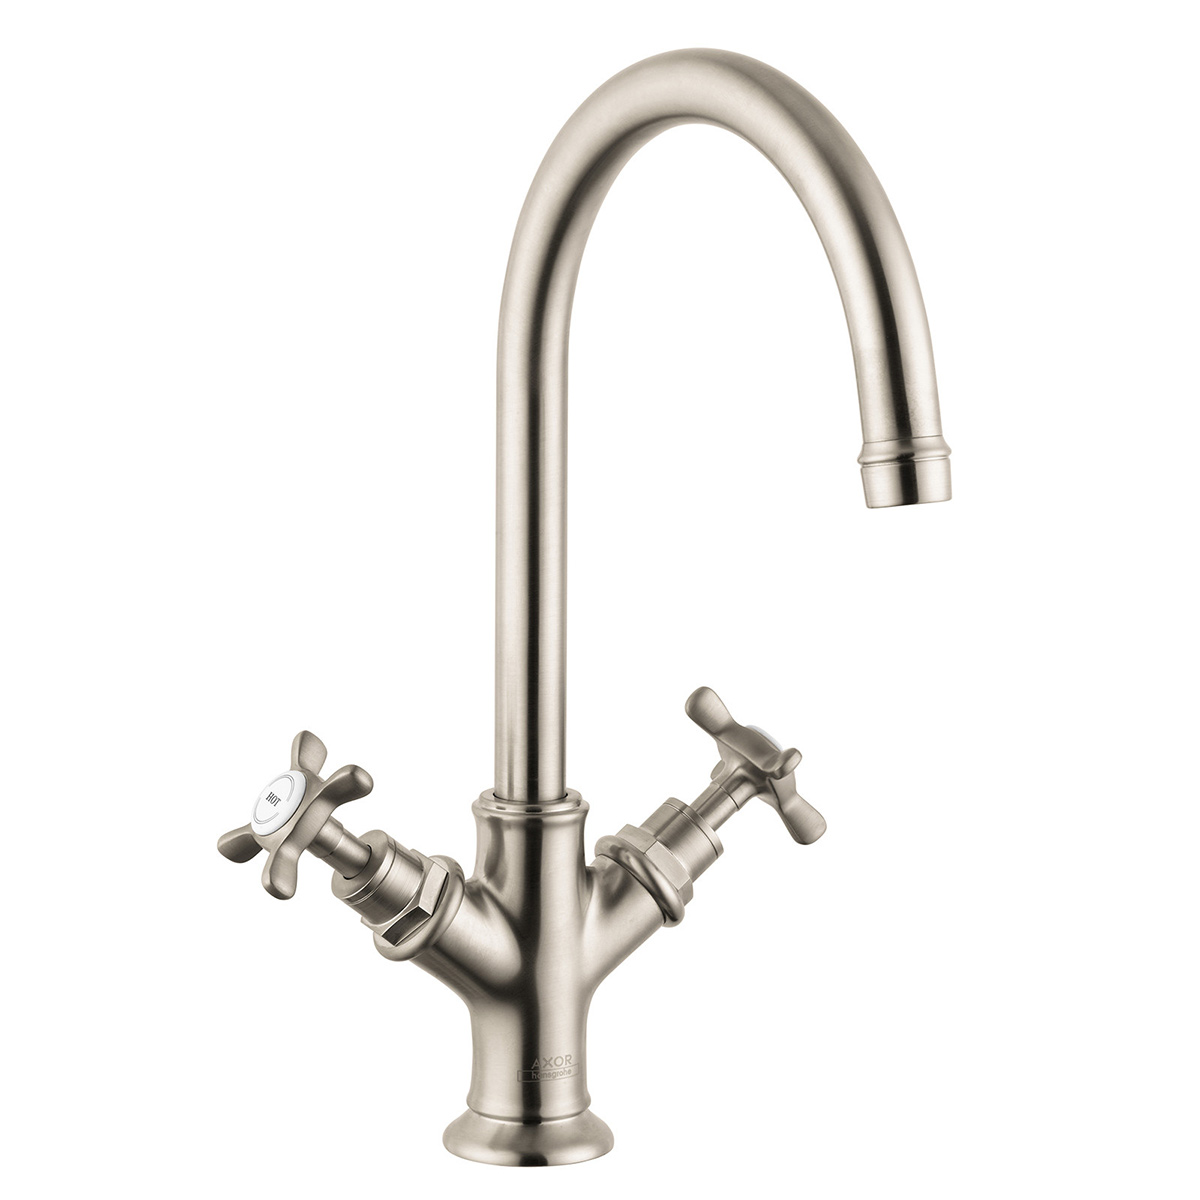 shaped white faucets bathroom painting wineglass howt modern tall faucet club lowes